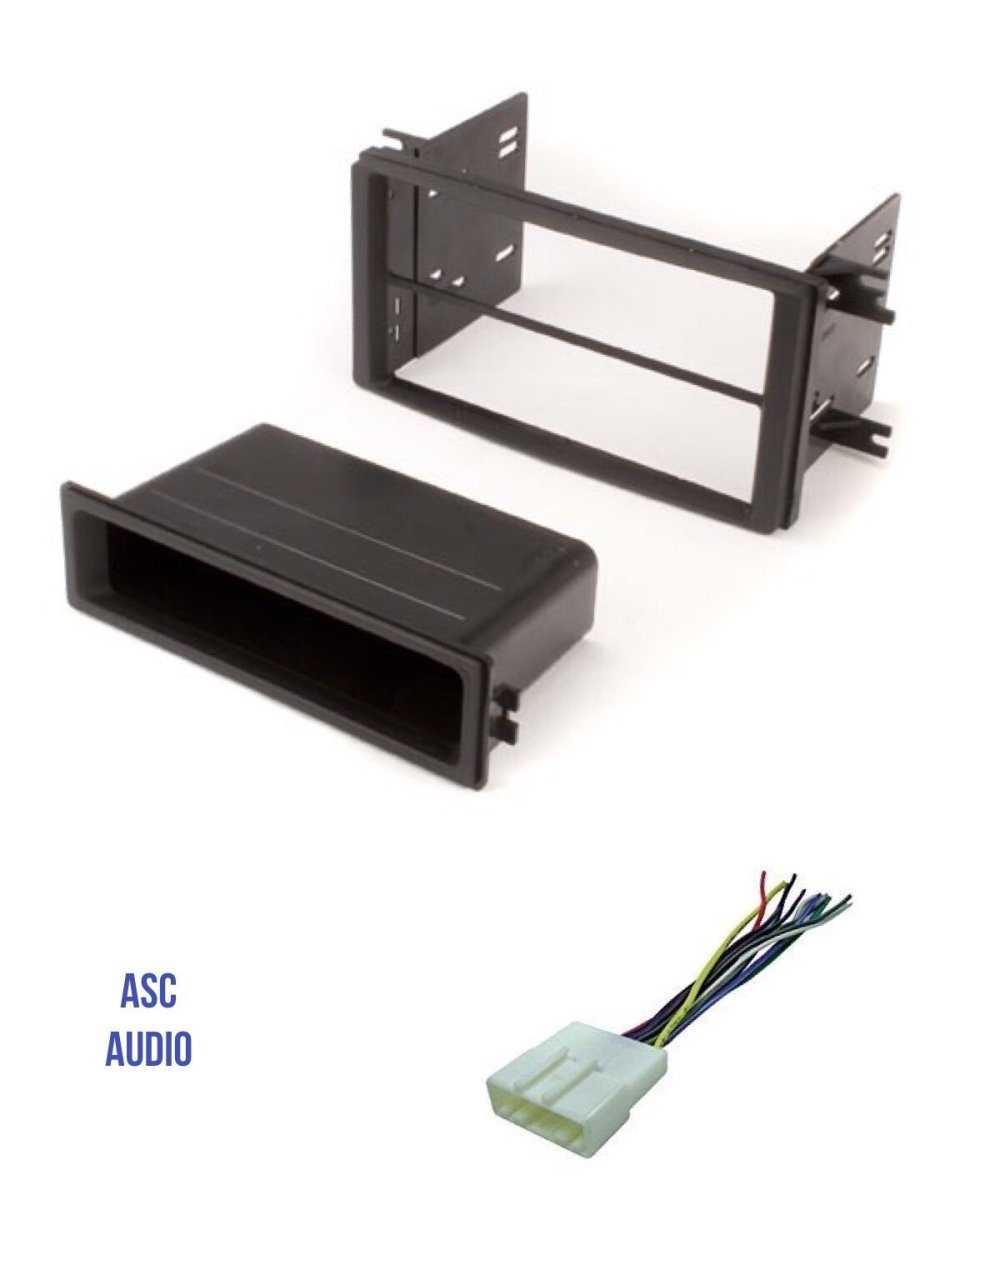 medium resolution of asc car stereo install dash kit and wire harness for installing an aftermarket single or double din radio for 2009 2013 subaru forester 2008 2011 subaru